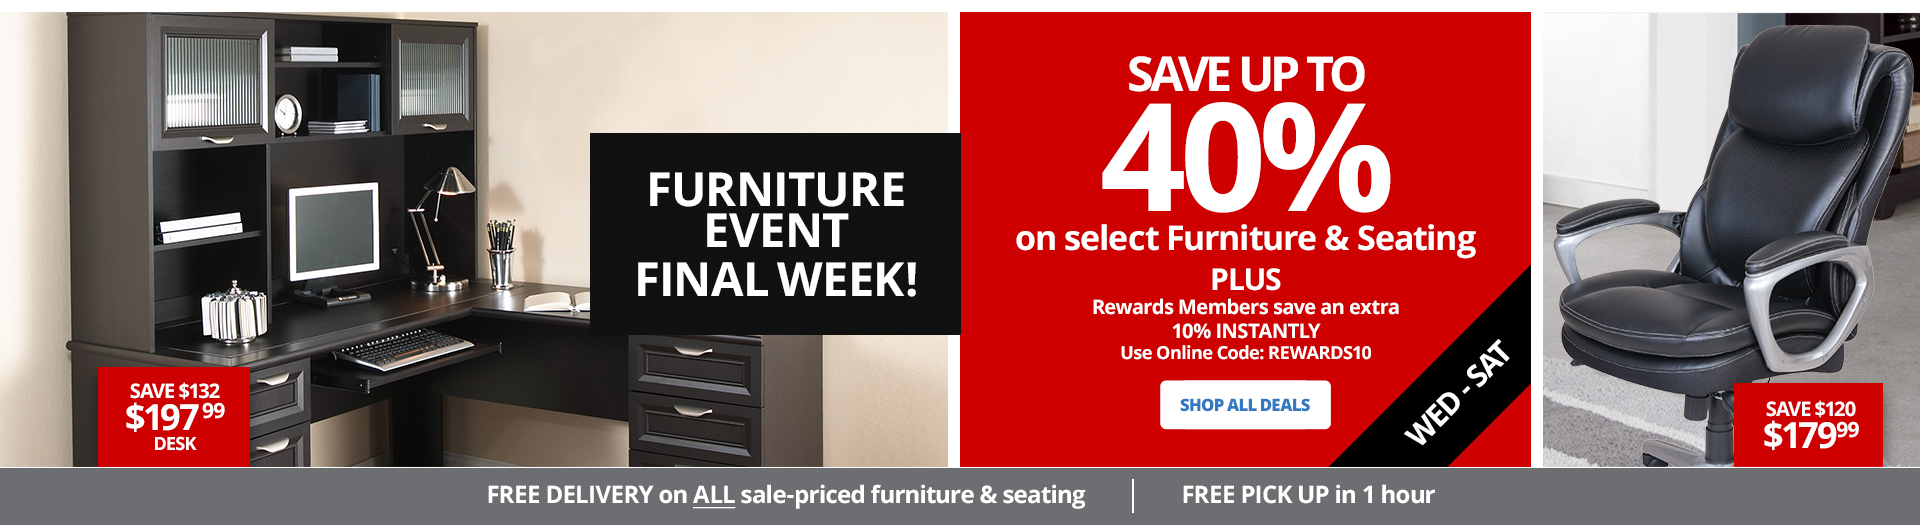 FINAL WEEK- Save up to 40% select furniture & seating